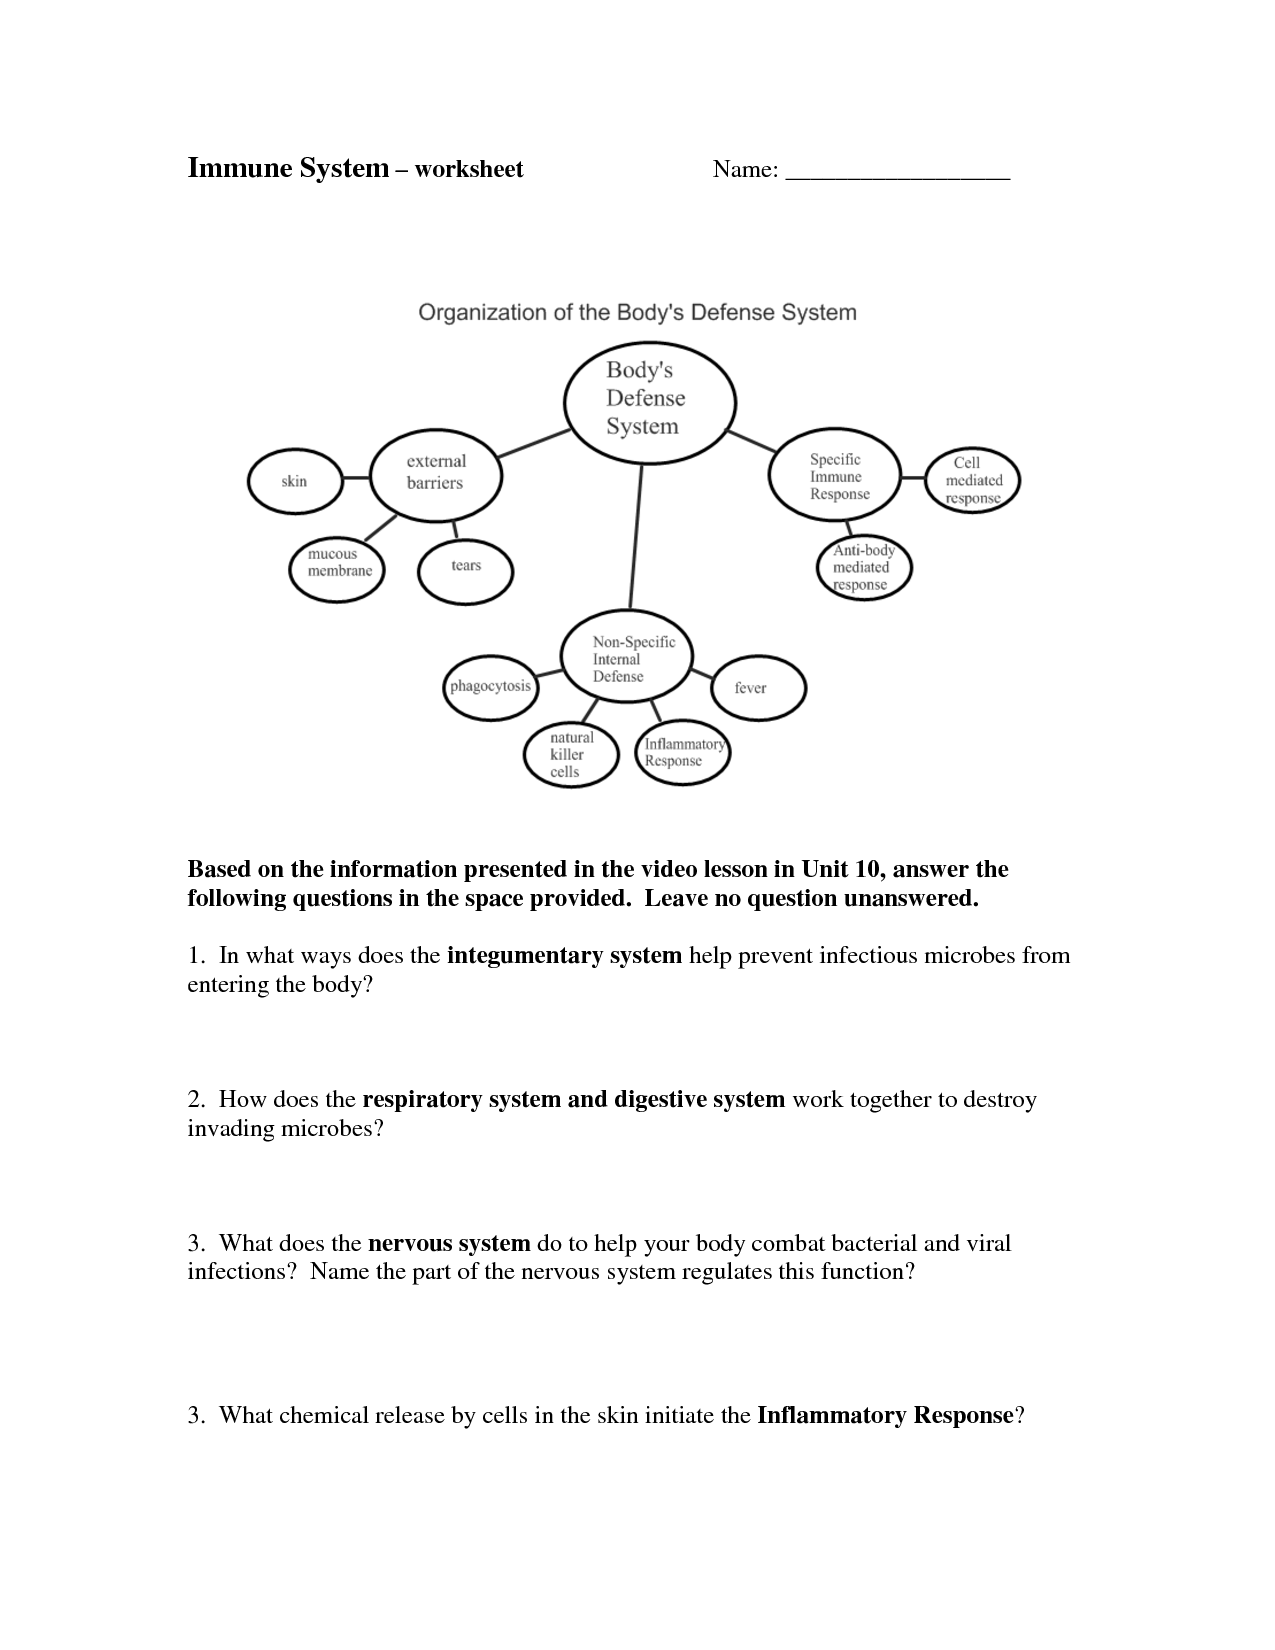 Immune System Worksheets For 5th Grade Integumentary